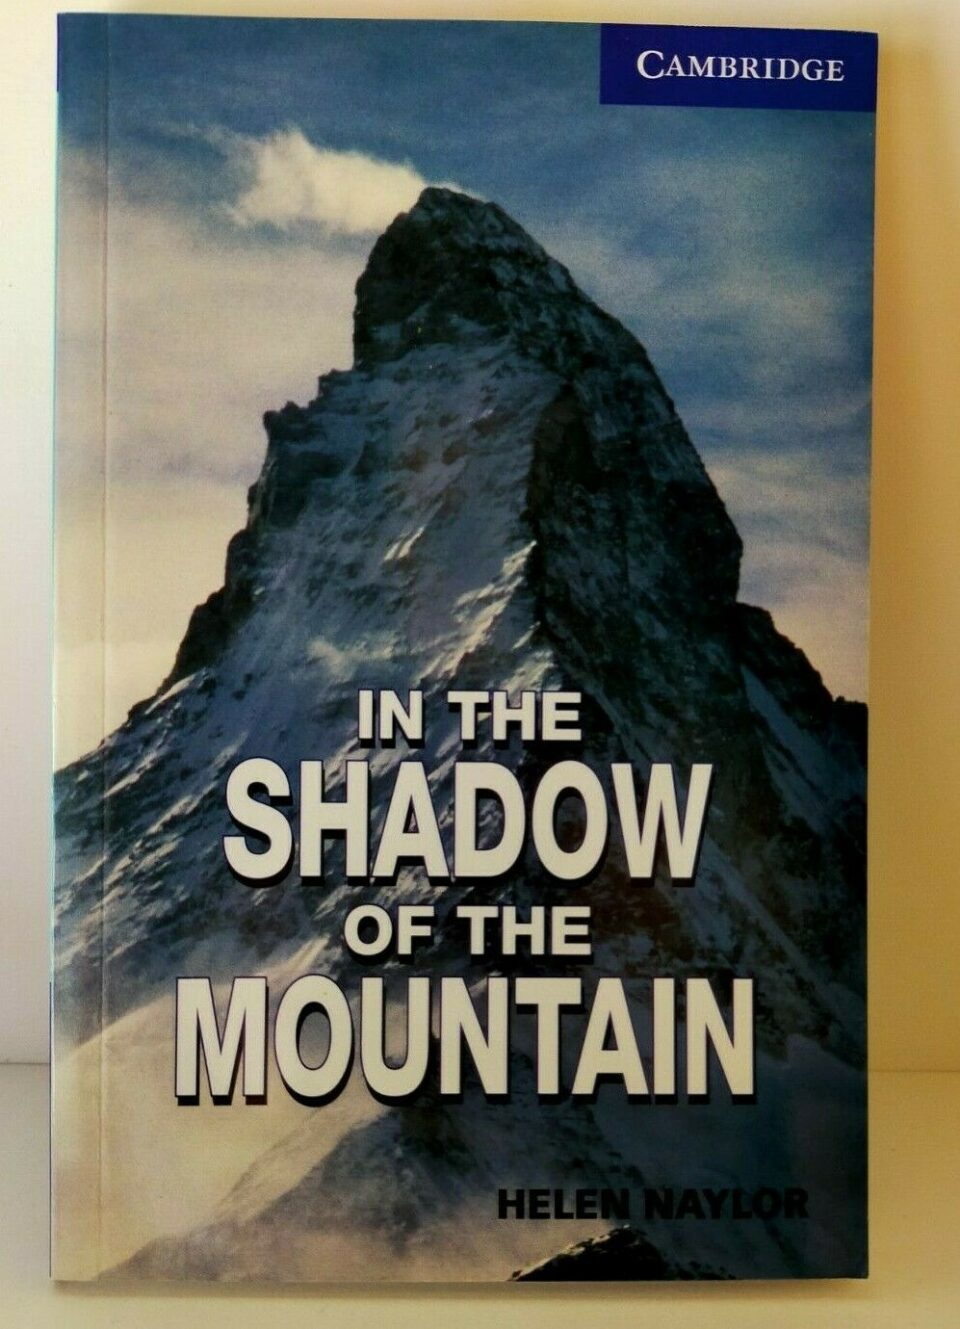 In The Shadow of the Mountain   Helen Naylor   Cambridge